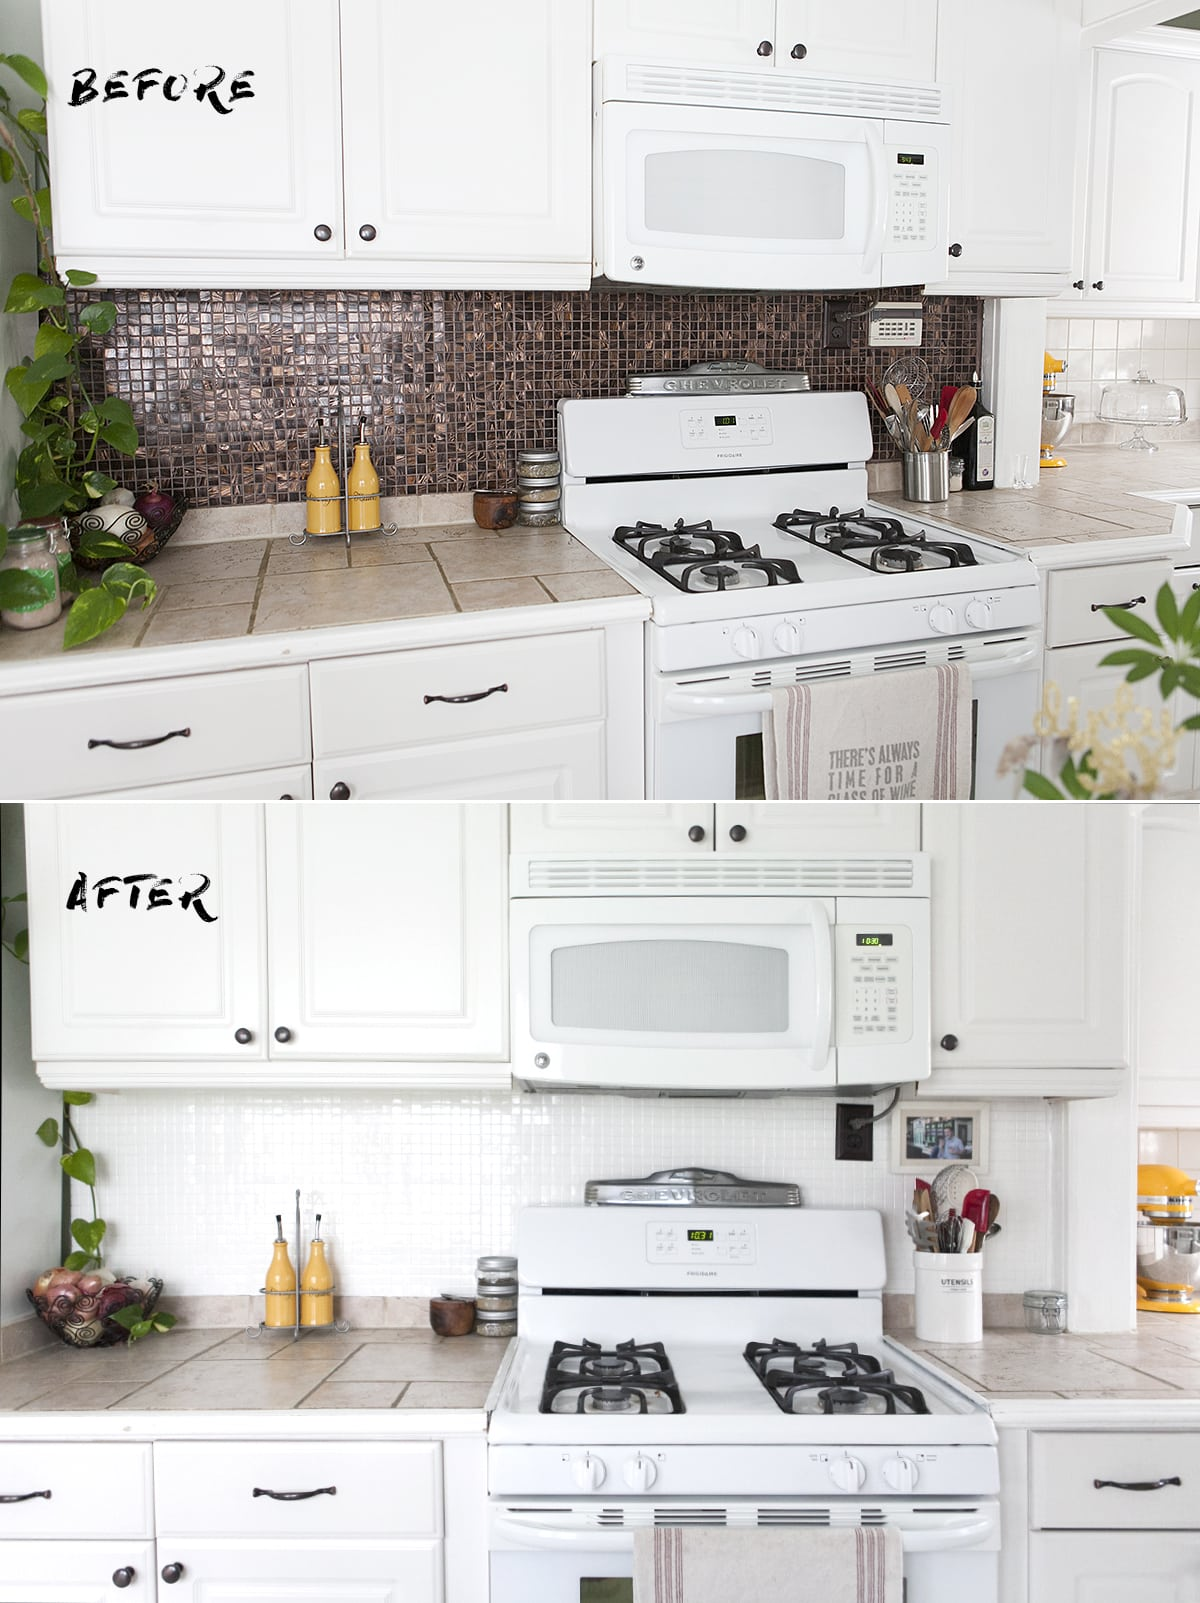 How To Paint A Tile Backsplash » Jessica Brigham